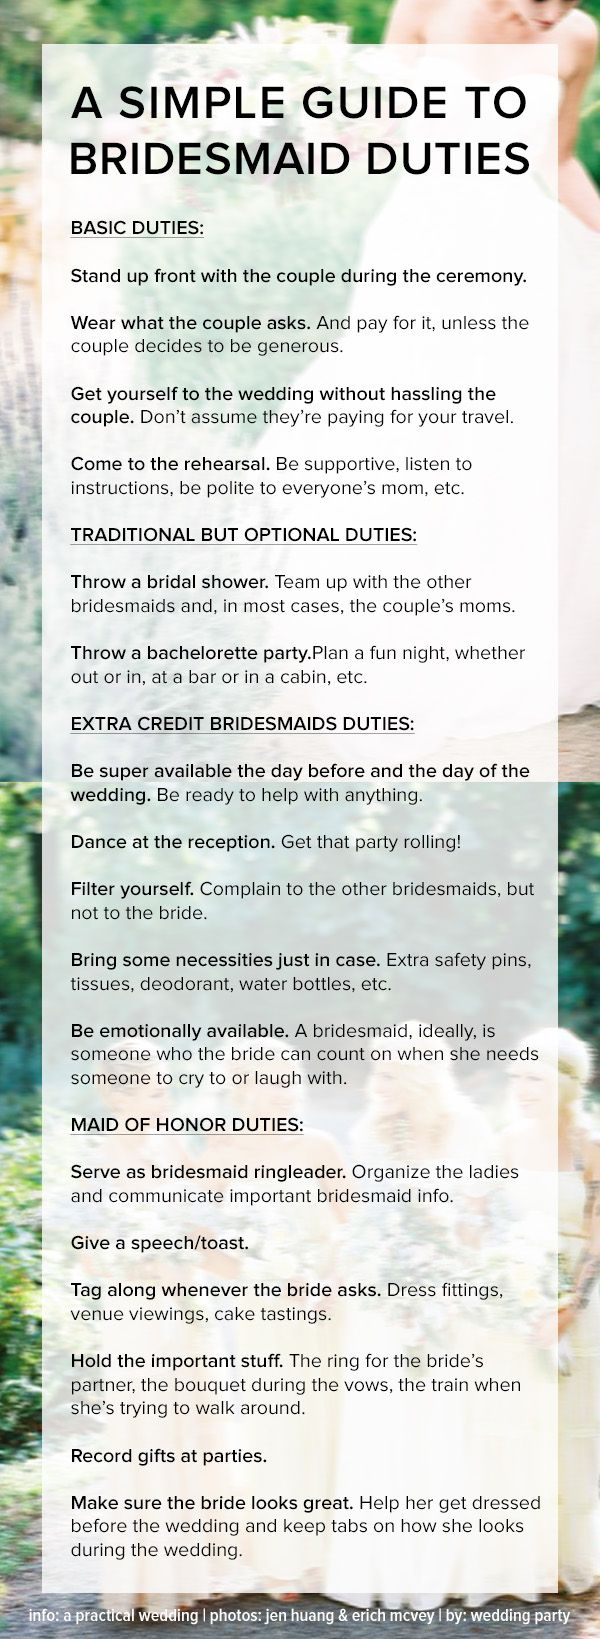 A Simple Easy Guide To What Your Bridesmaids Duties And They Are Supposed